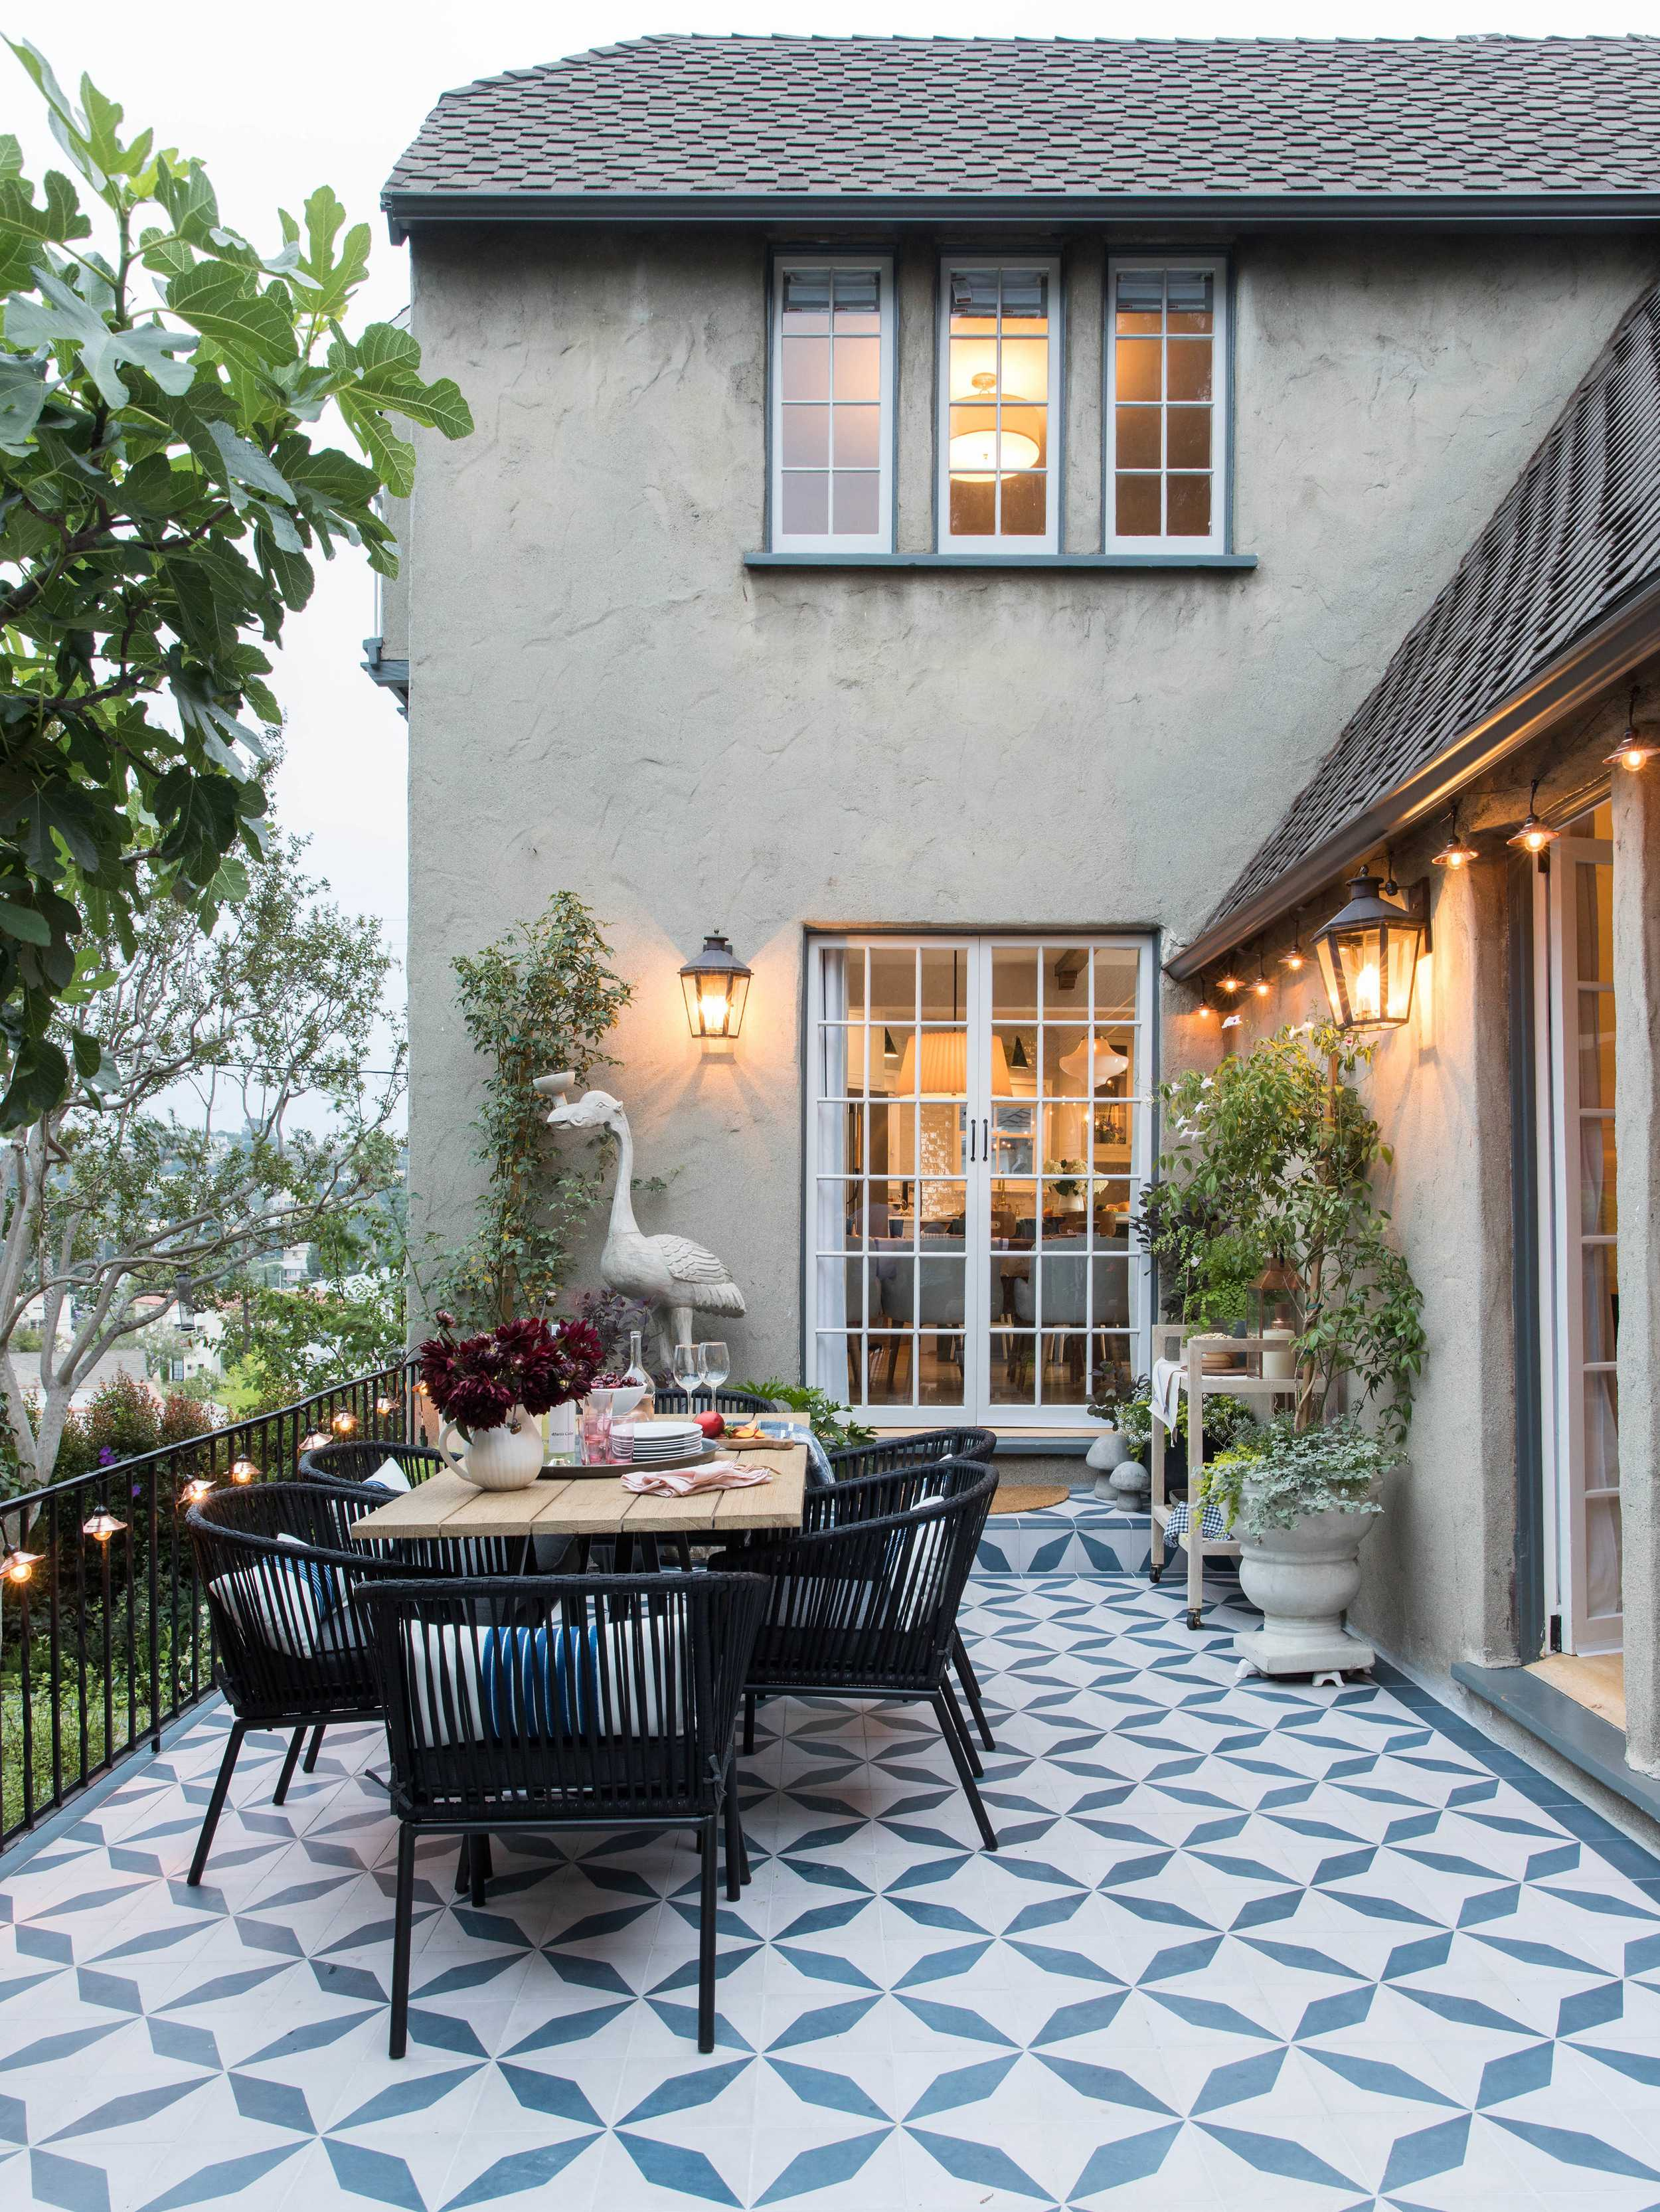 16 0617 Realsimple Eh Patio 0973